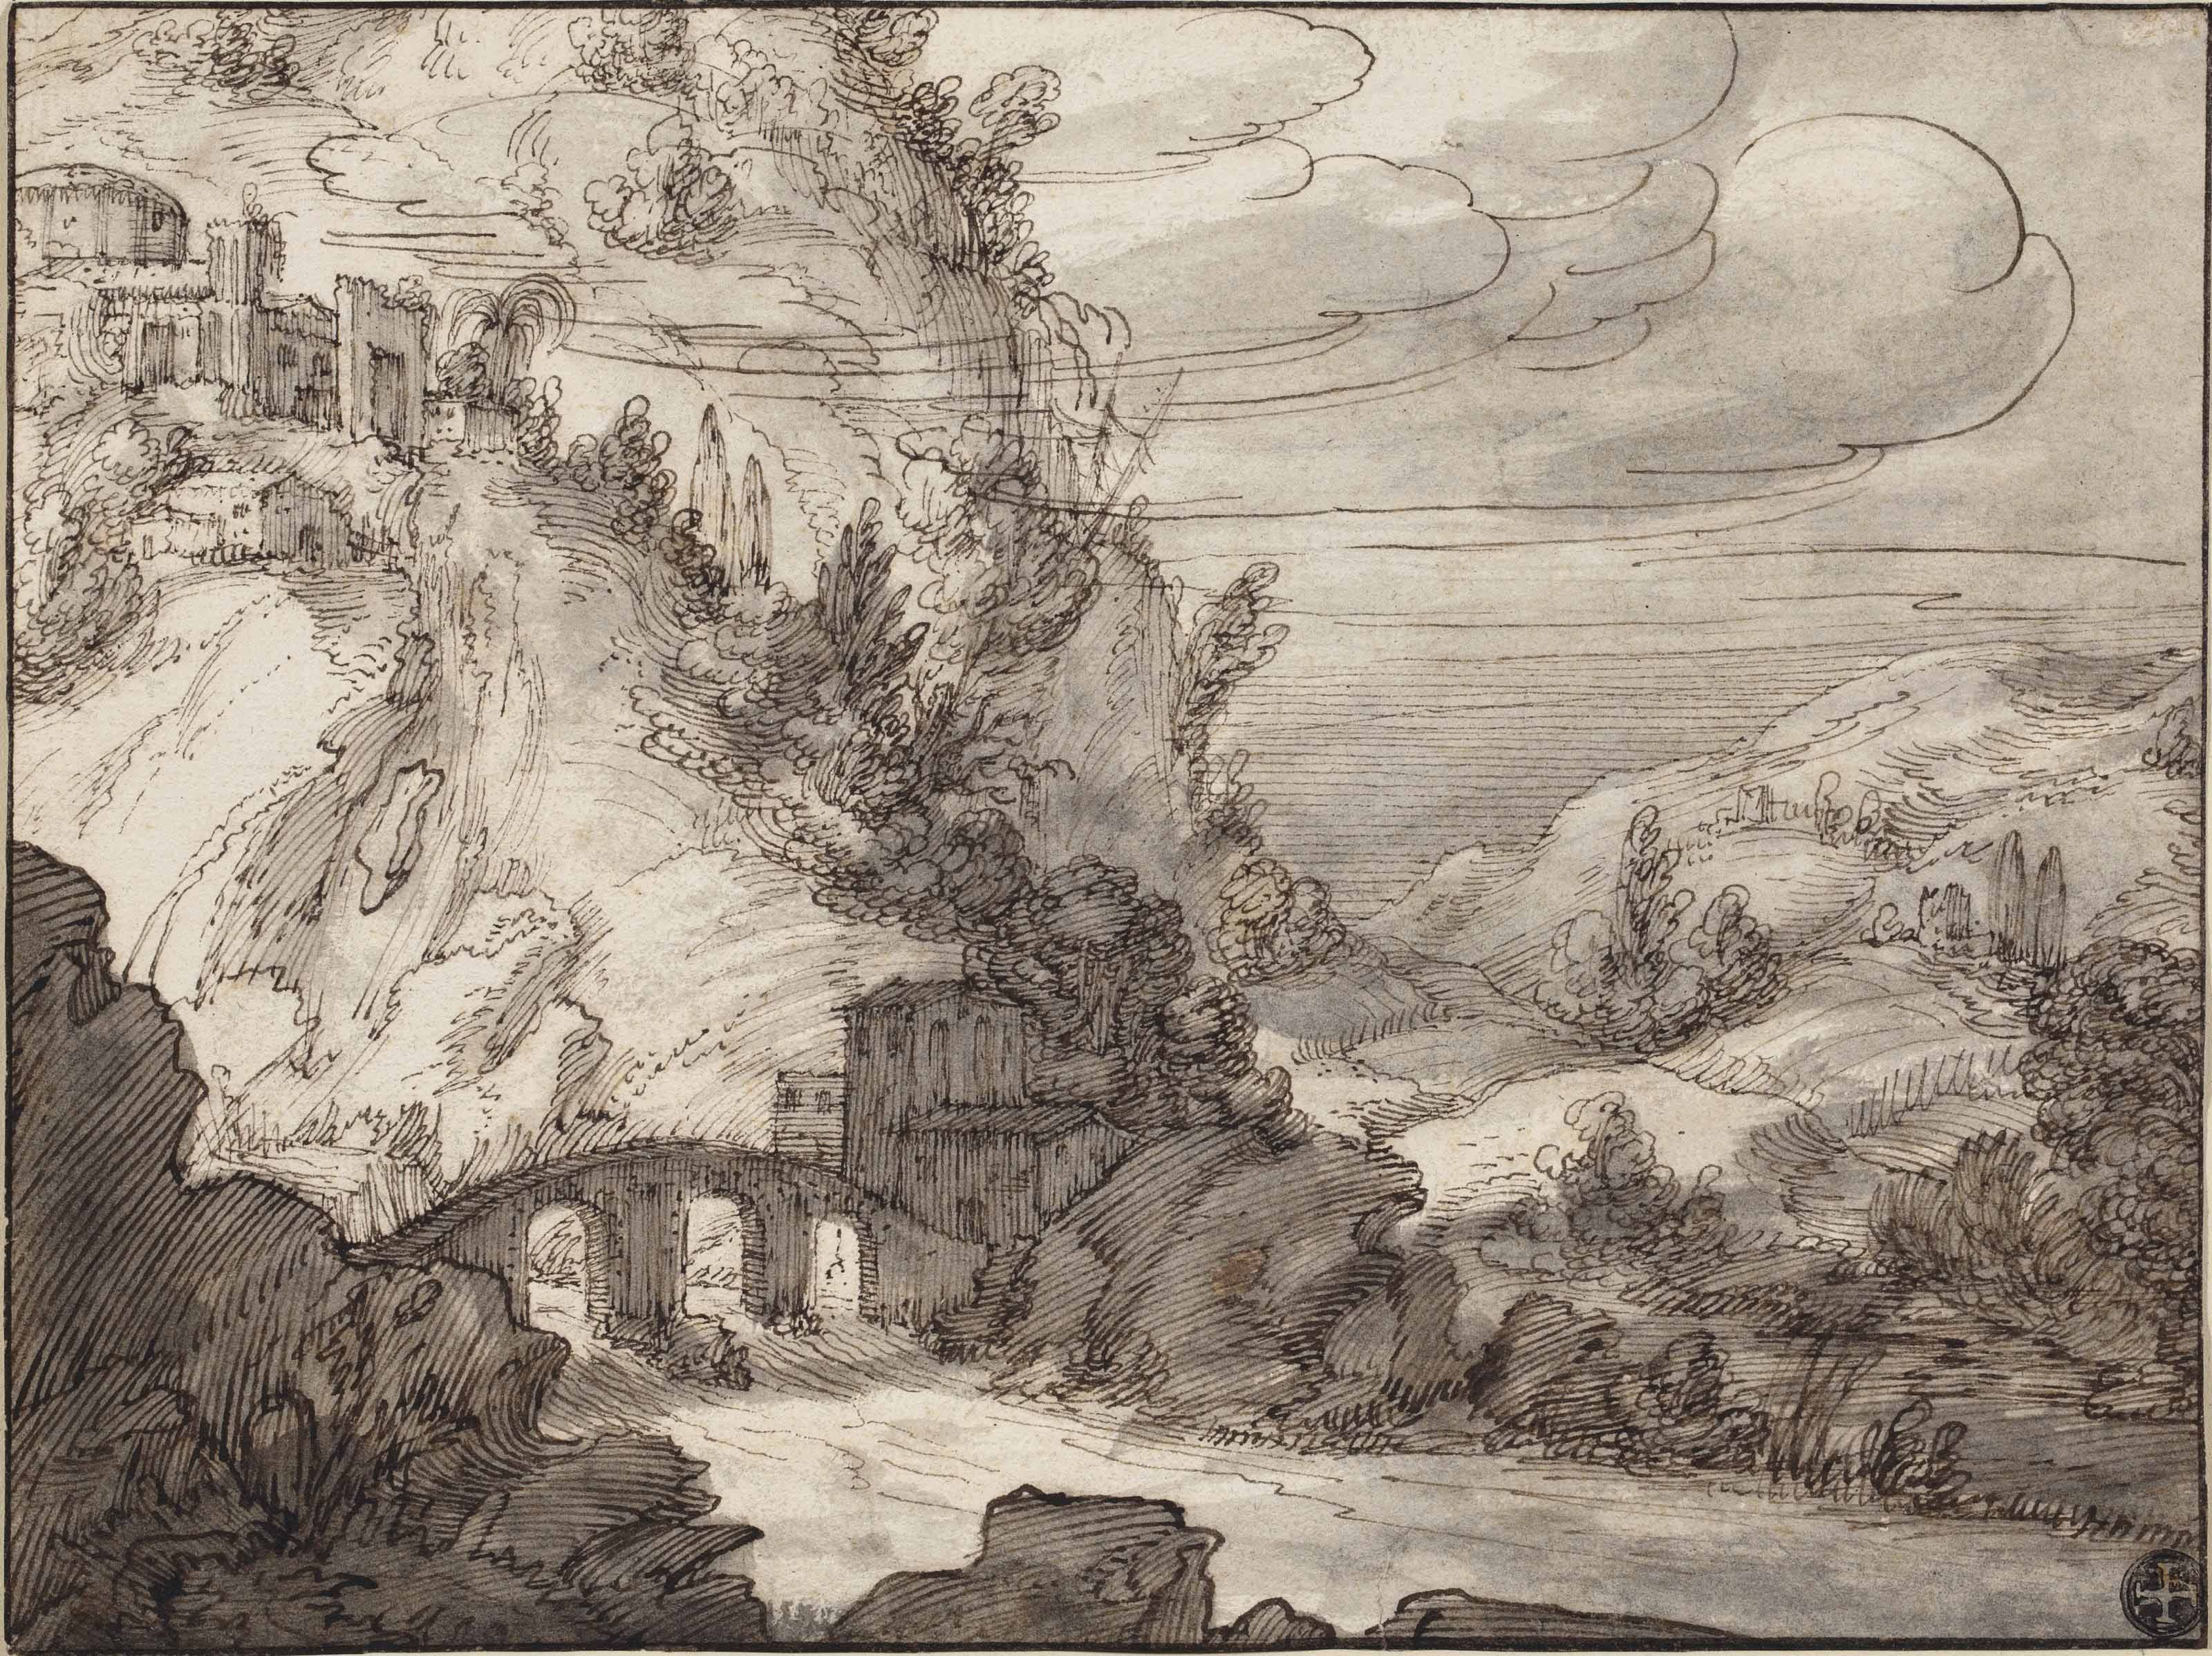 A mountainous landscape with an arched bridge over a river